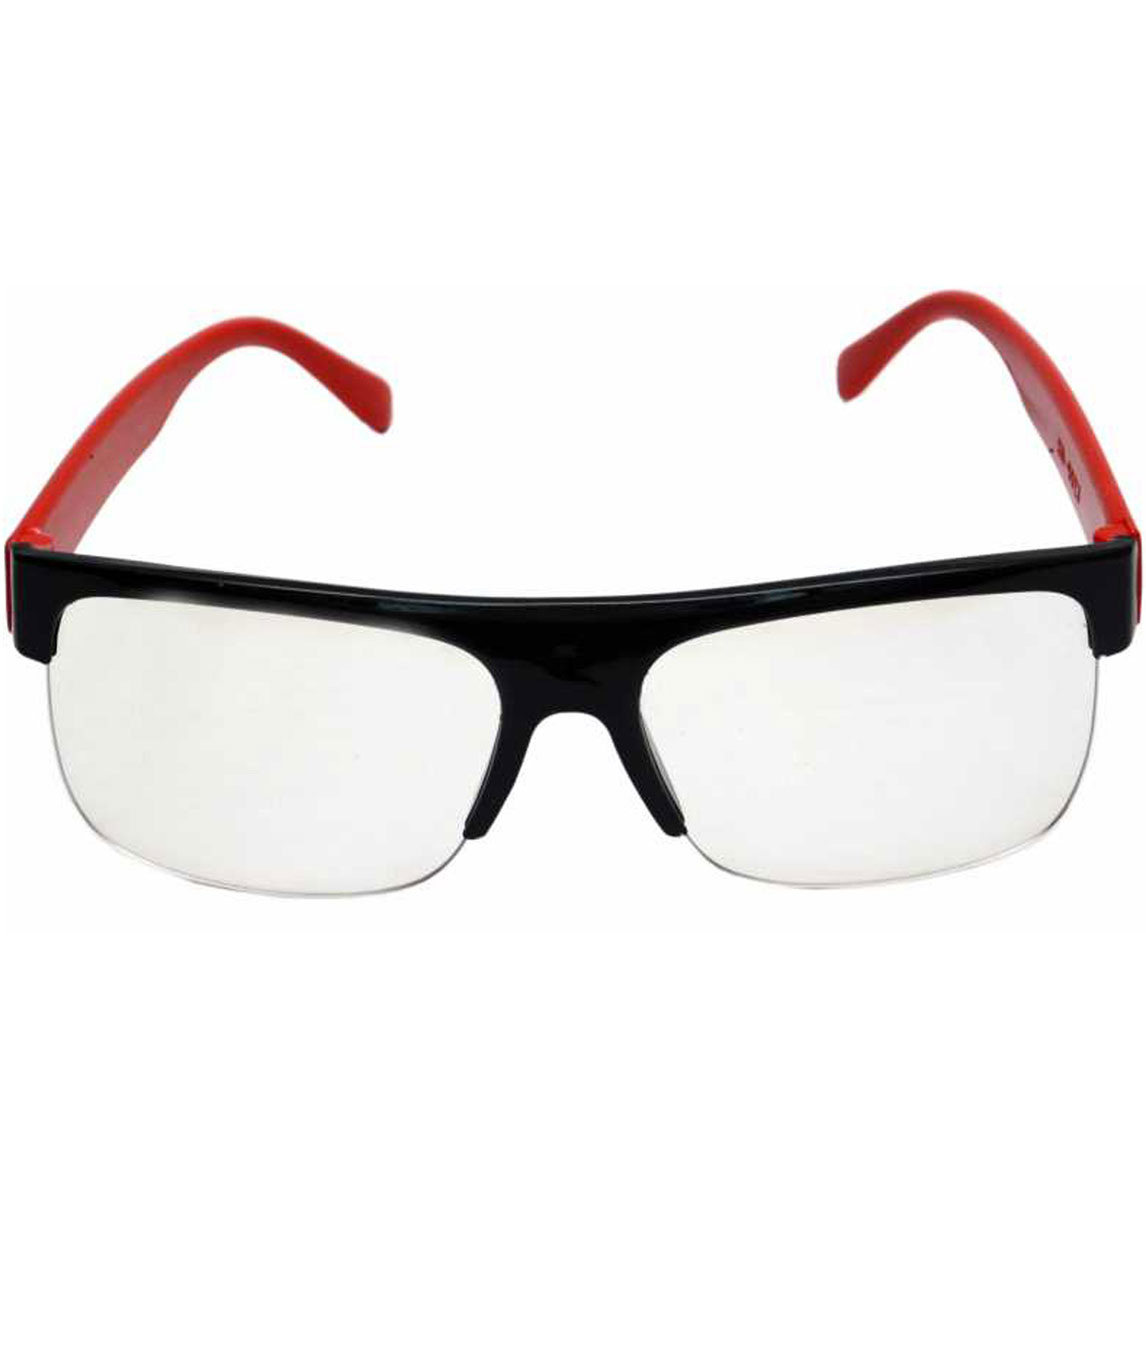 SPECTACLE SUNGLASSES (55) (CLEAR, RED)